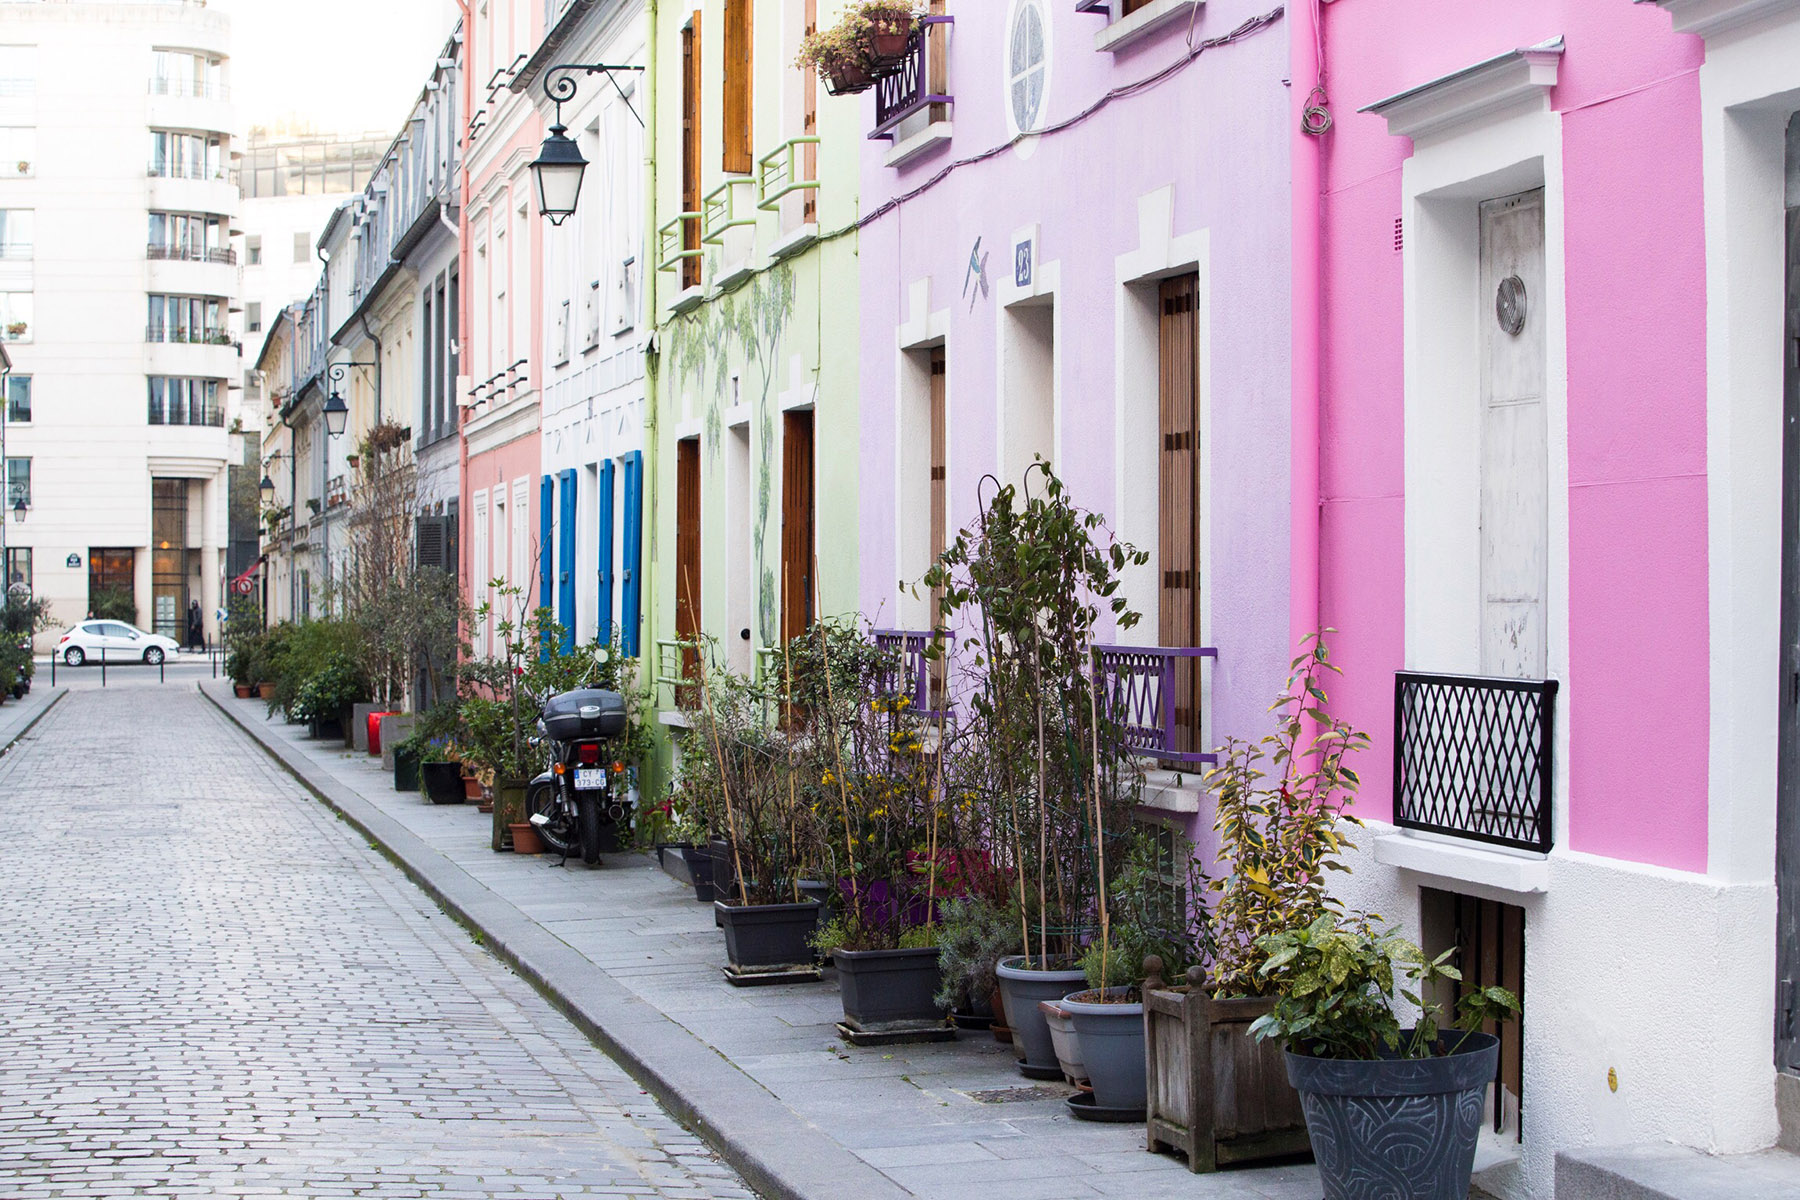 Paris street with colourful houses